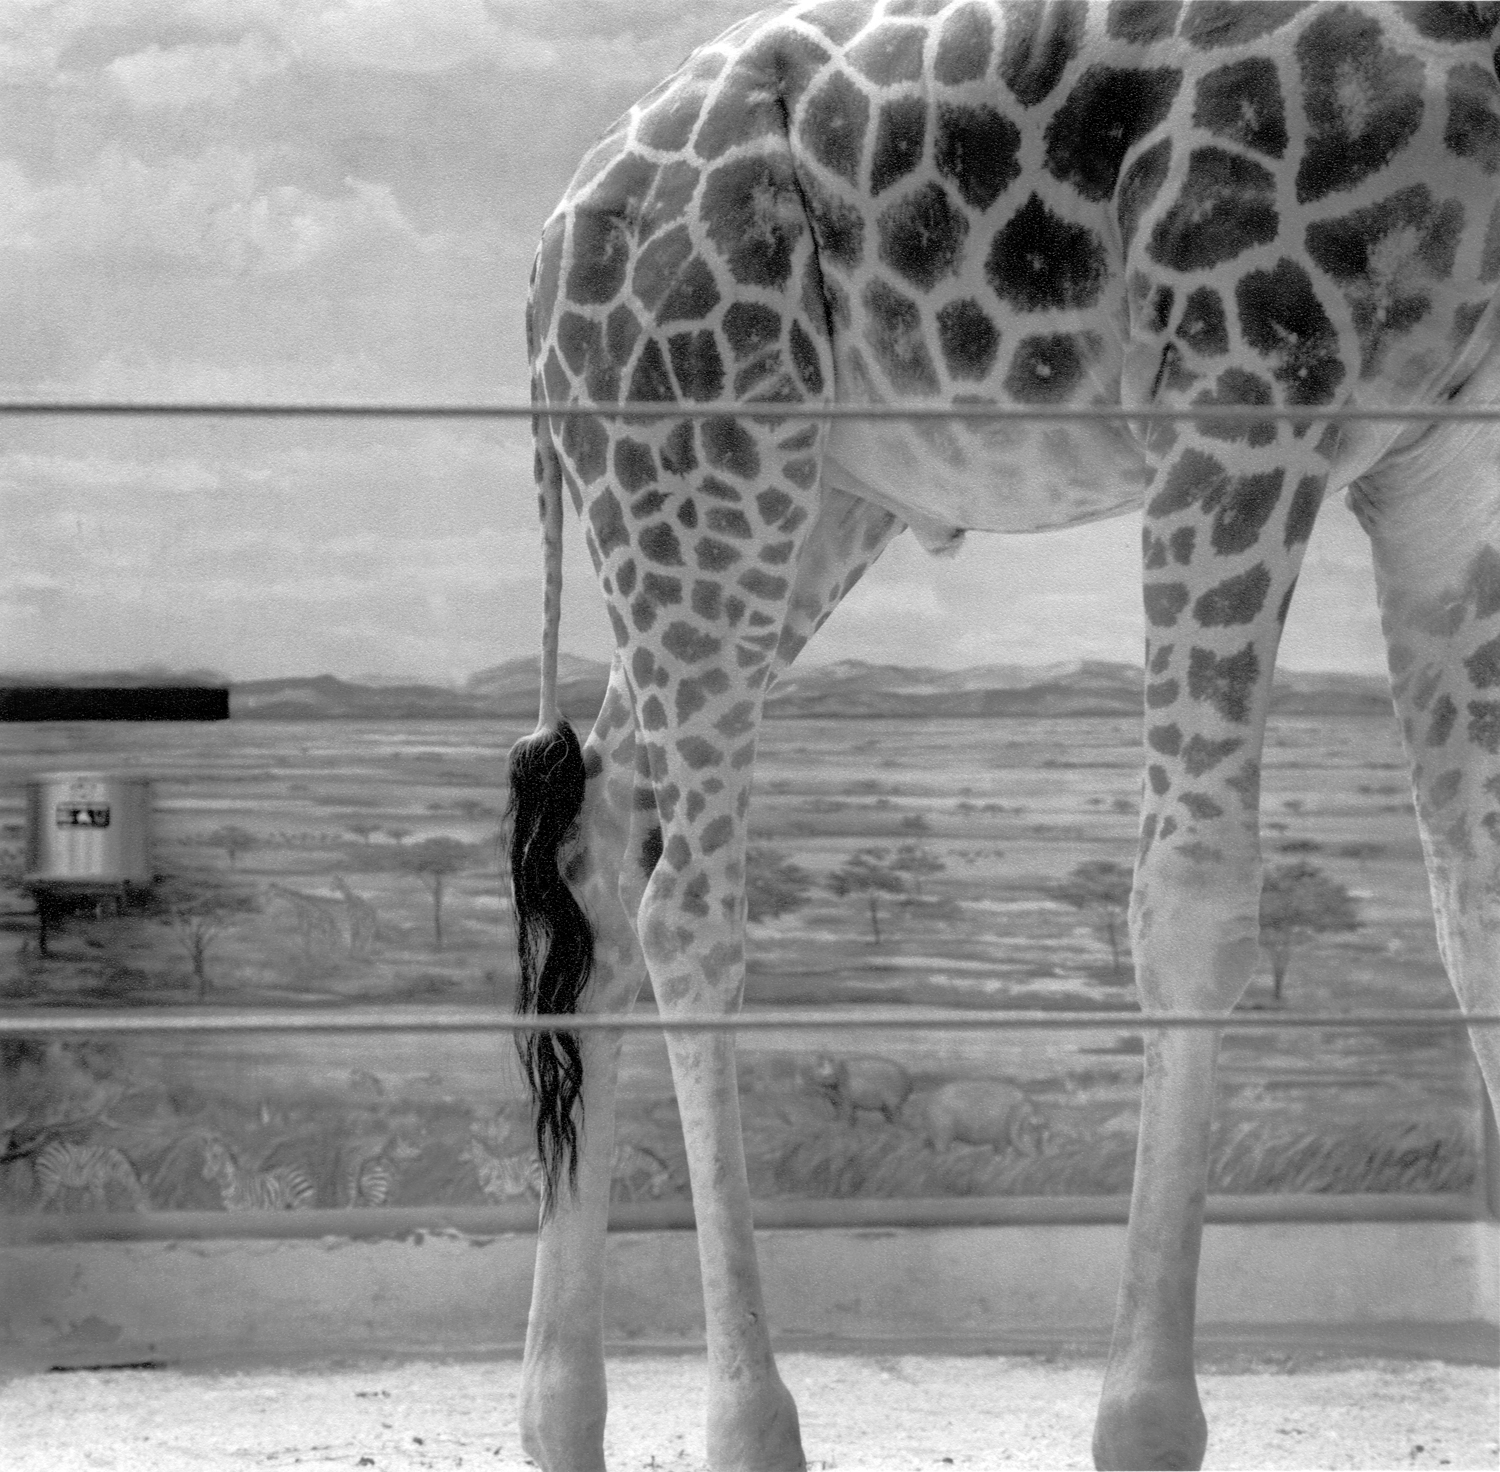 giraffe_and_diarama.jpg